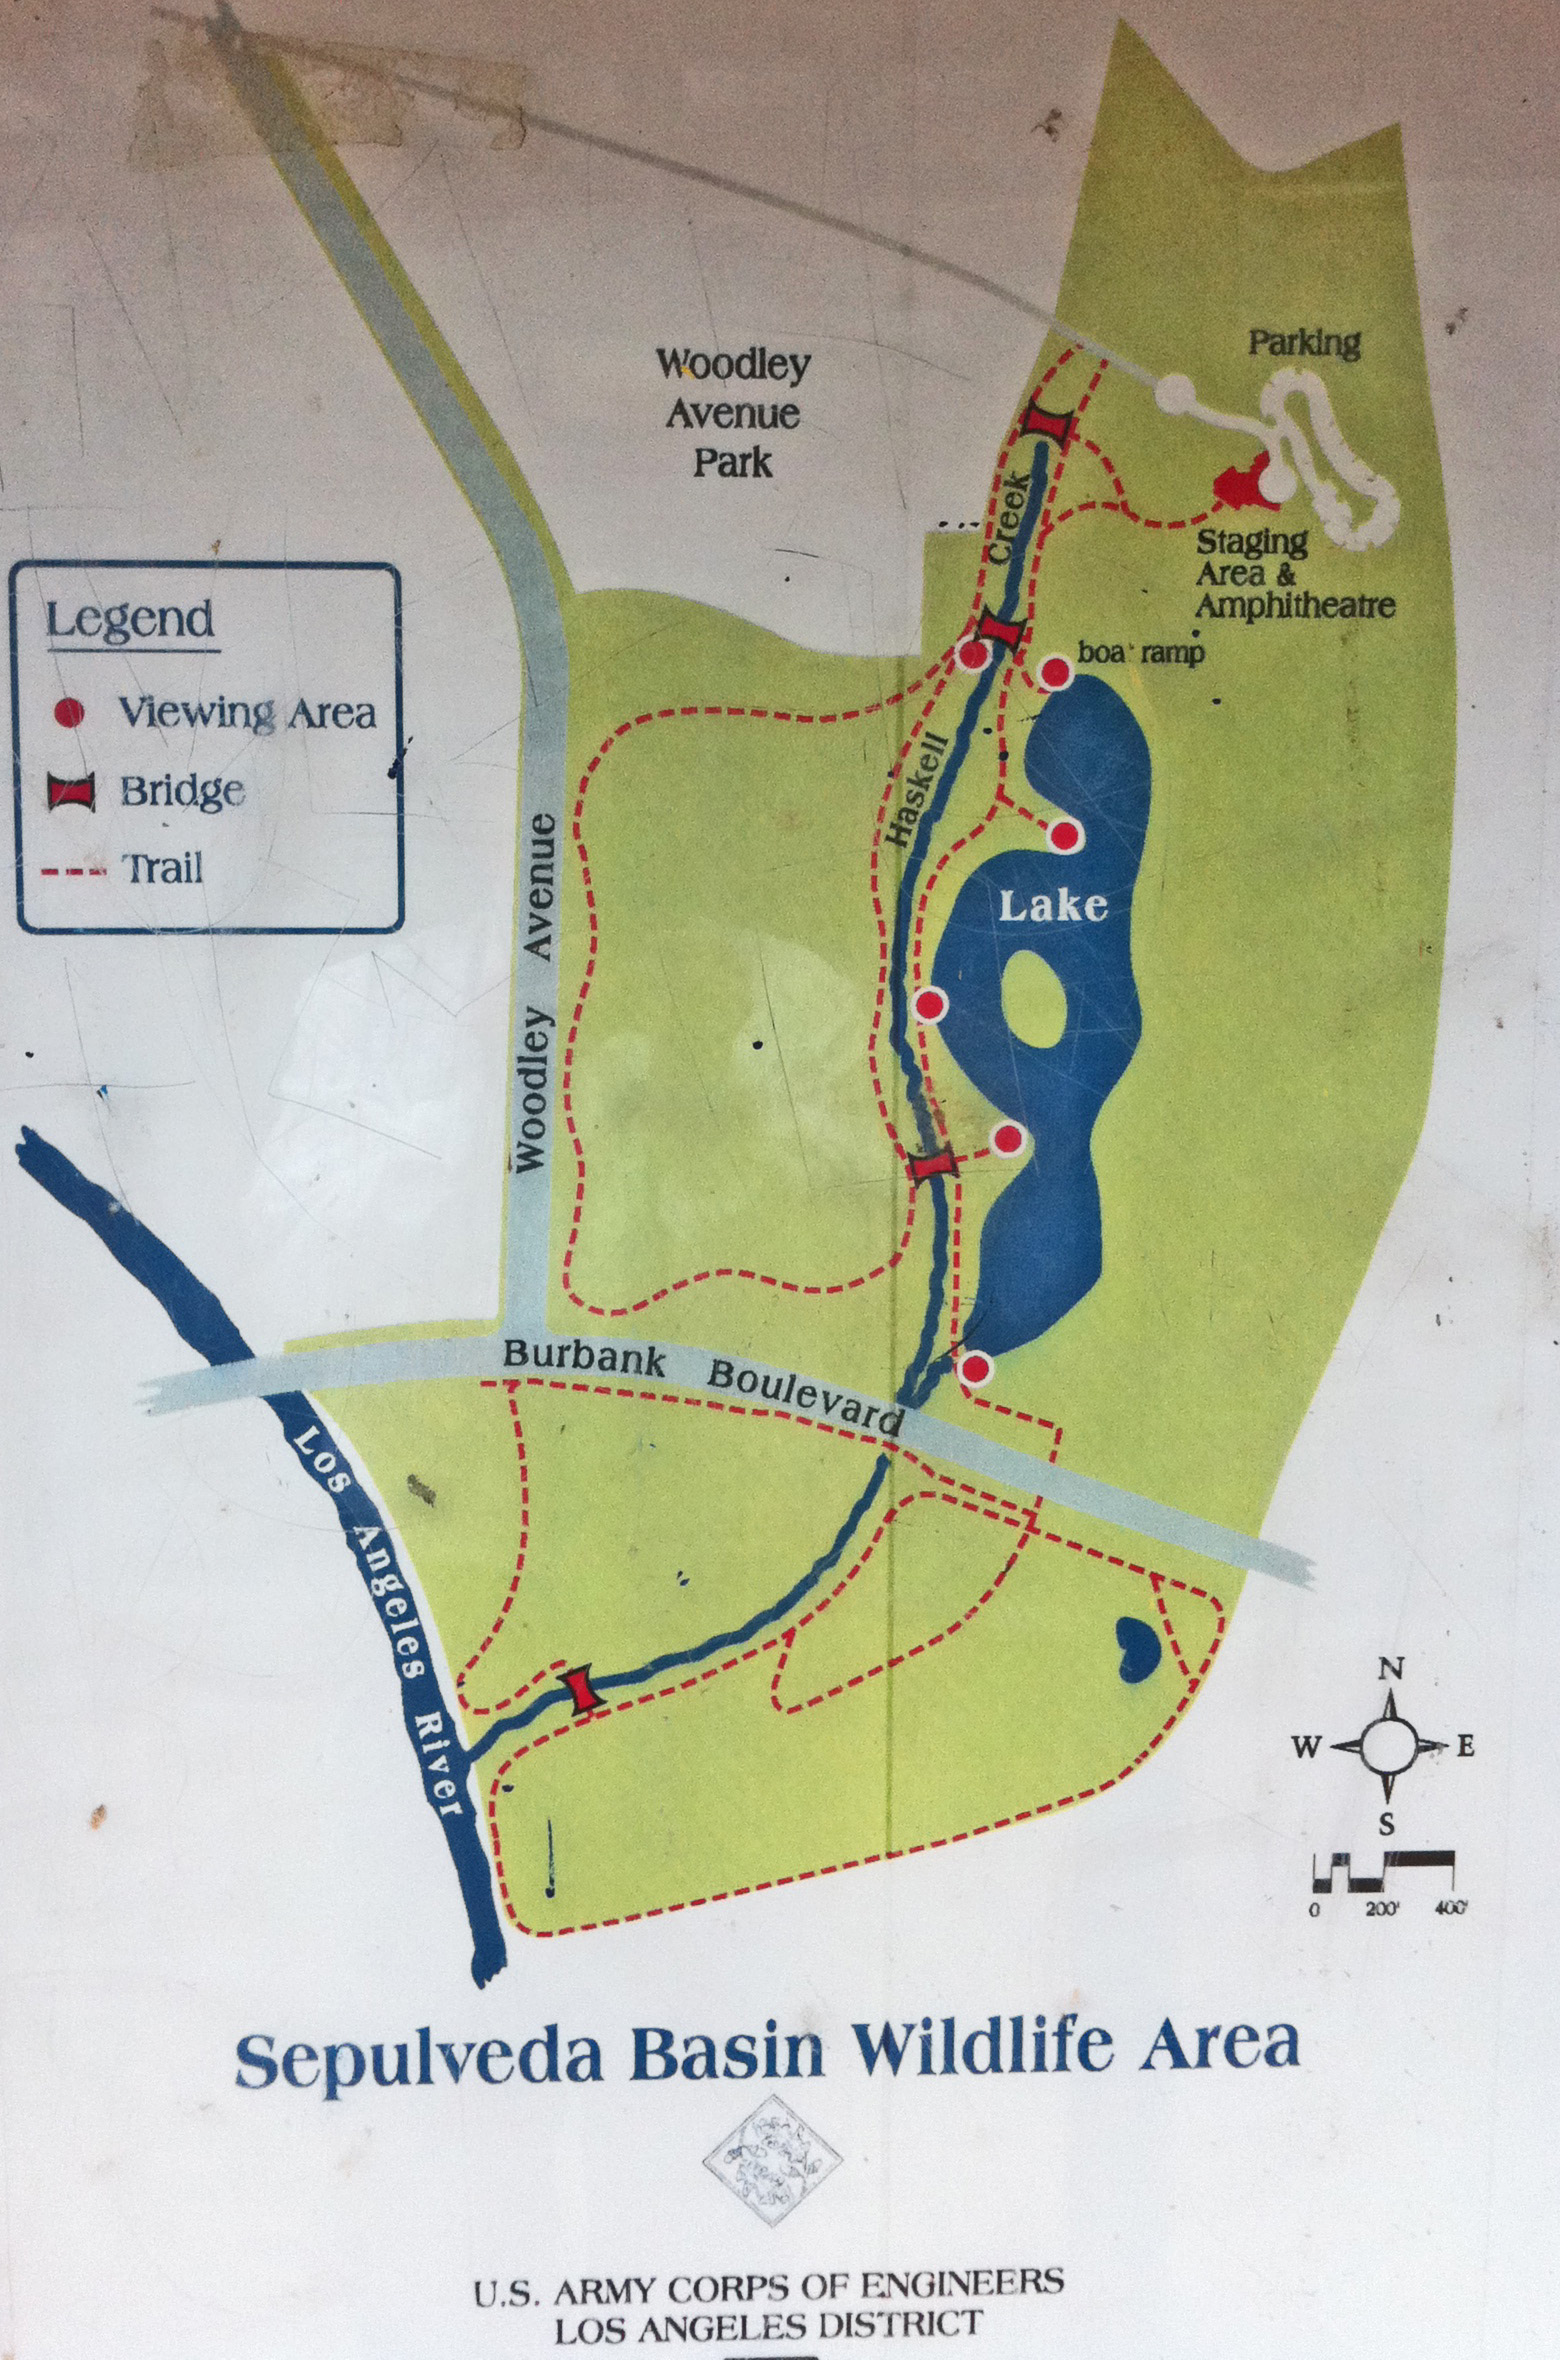 click here for a local trail map of the wildlife reserve